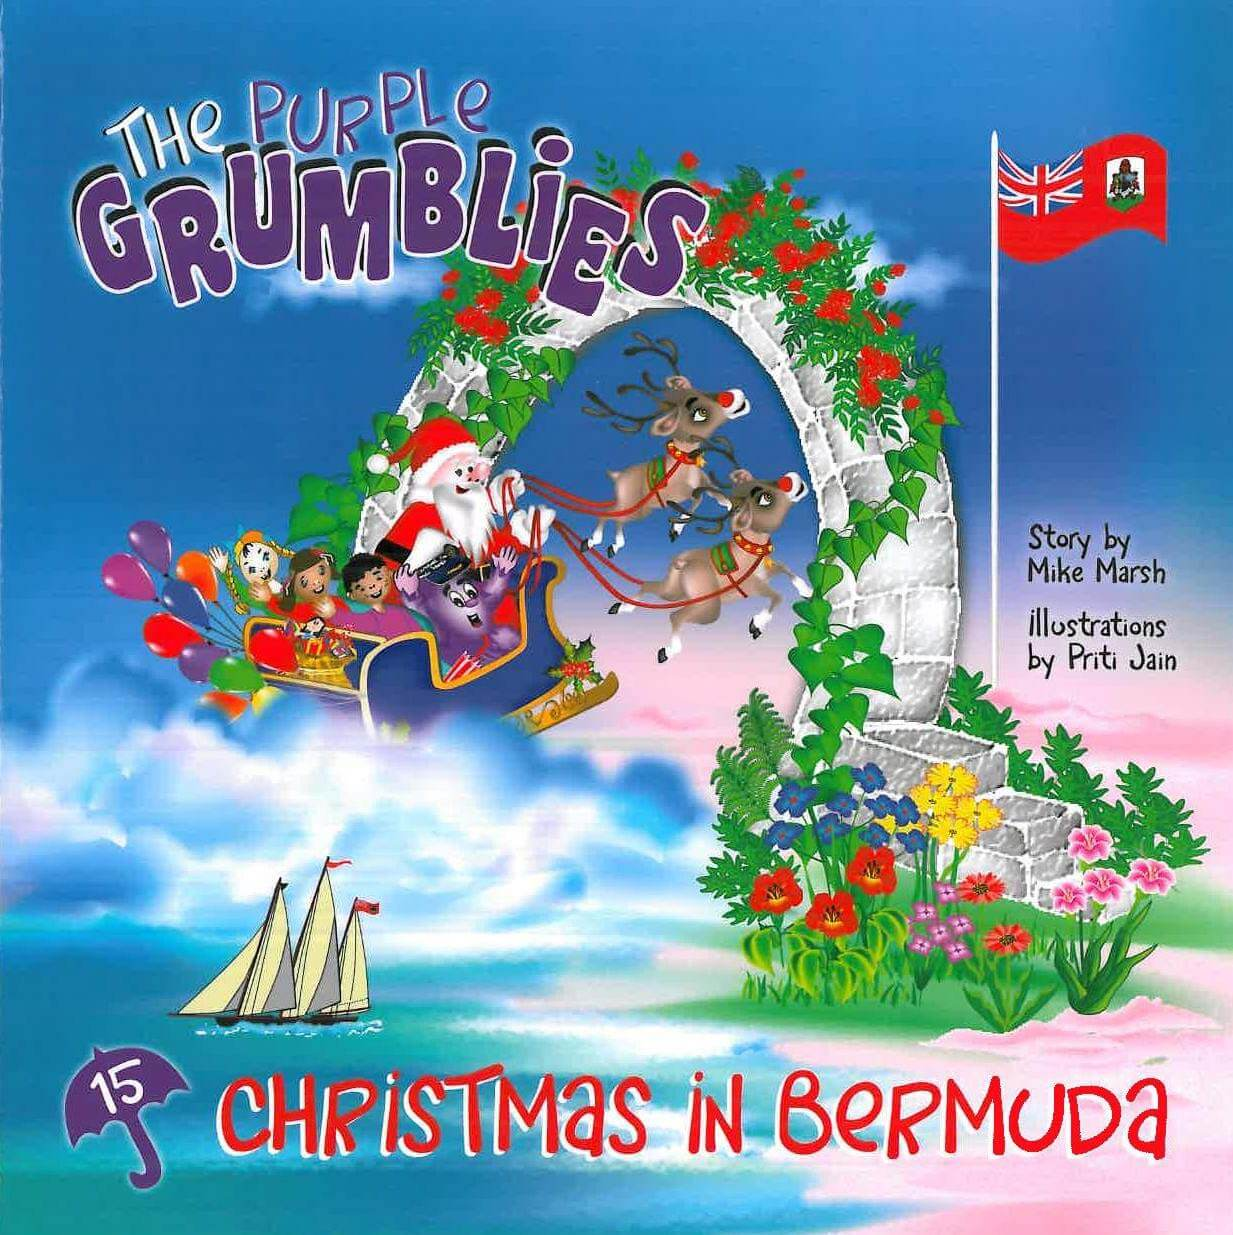 purplegrumblies